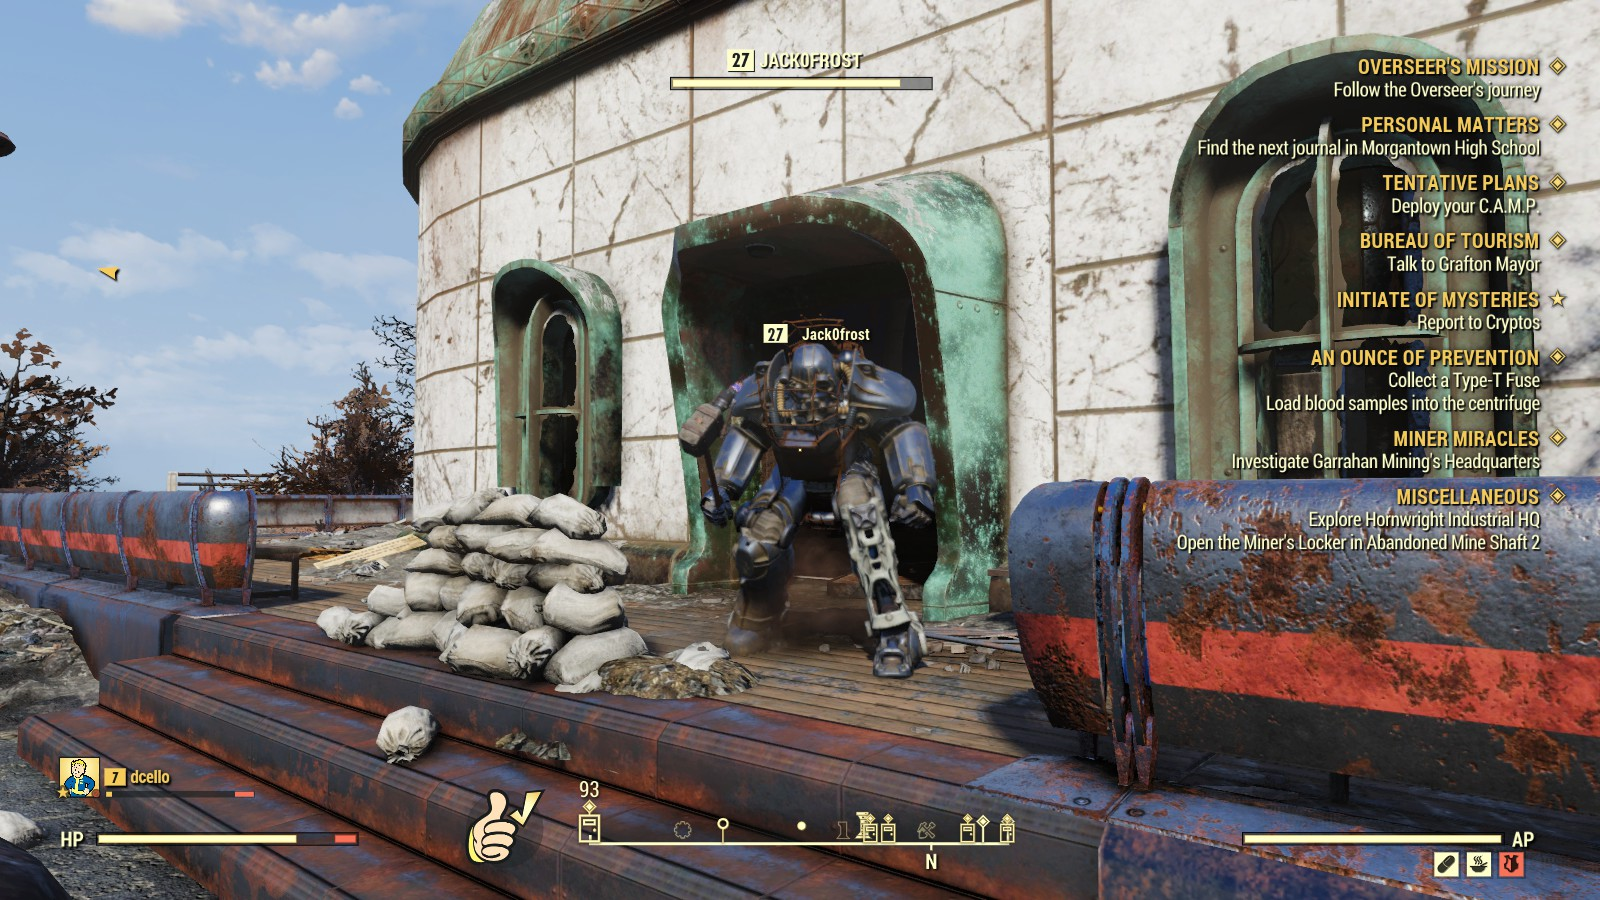 Fallout 76 Steam - Will Fallout 76 Release on Steam